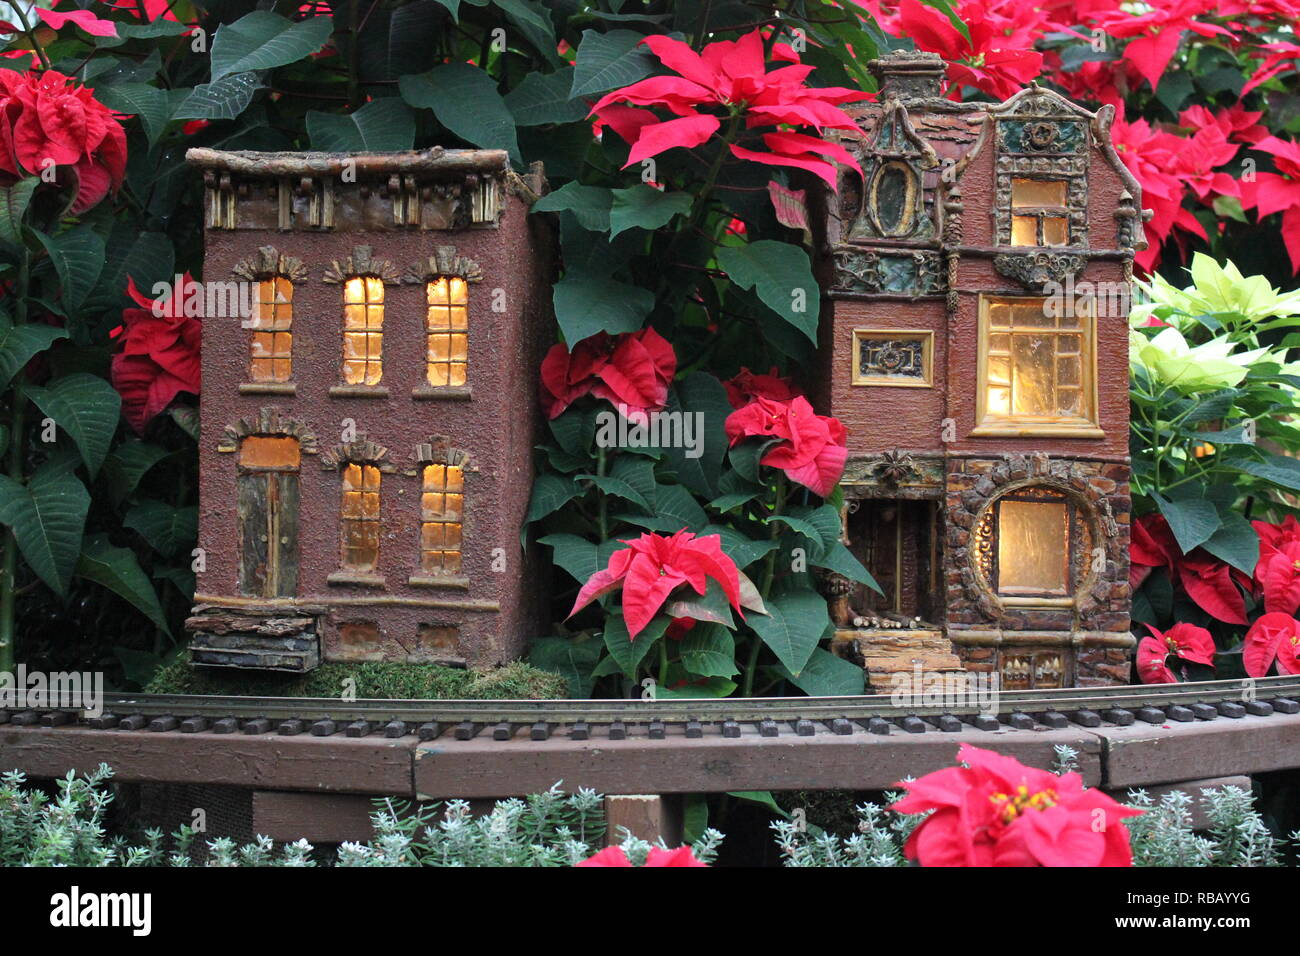 Christmas Holiday flower Show with small scale buildings and toy train tracks at the Lincoln Park Conservatory in Chicago, Illinois, USA. - Stock Image